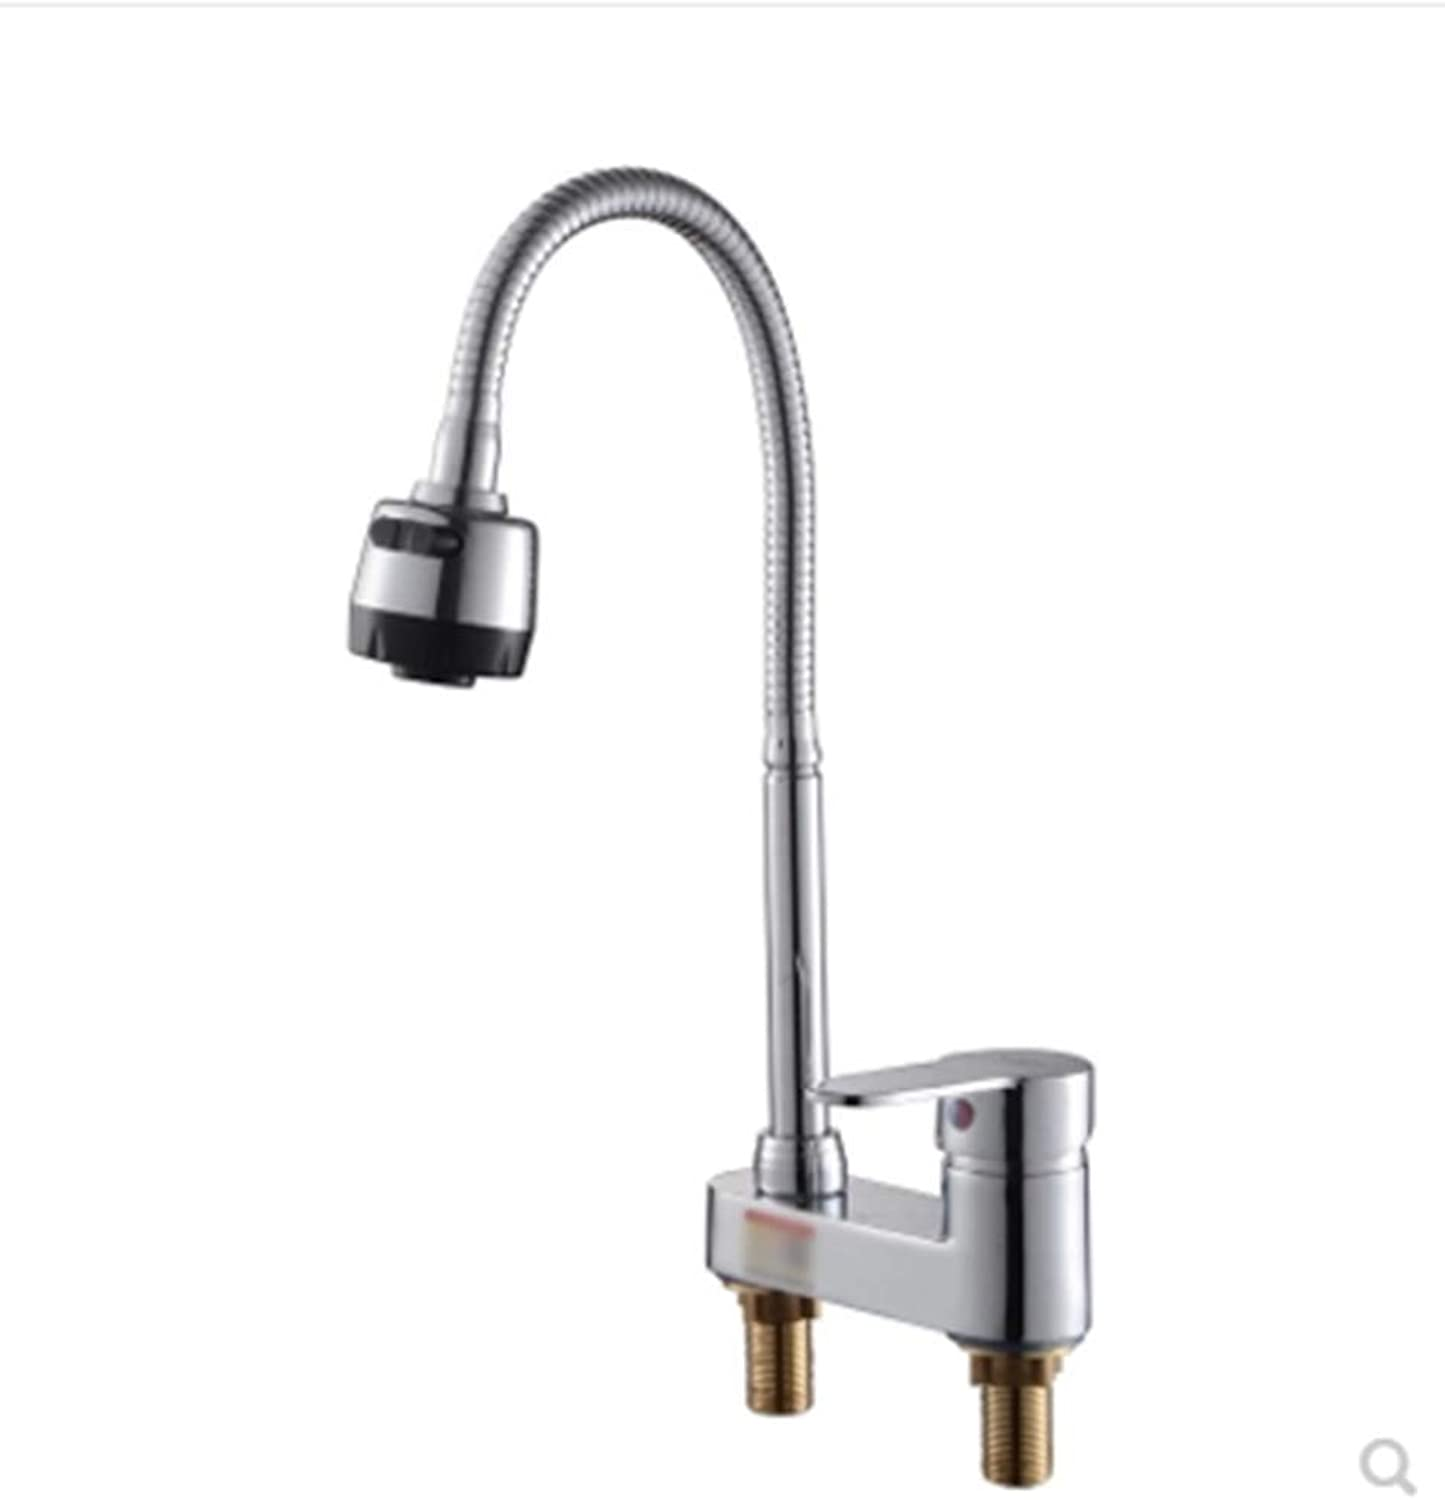 Ldoons Kitchen bathroom copper basin bathroom hot and cold three holes B faucet